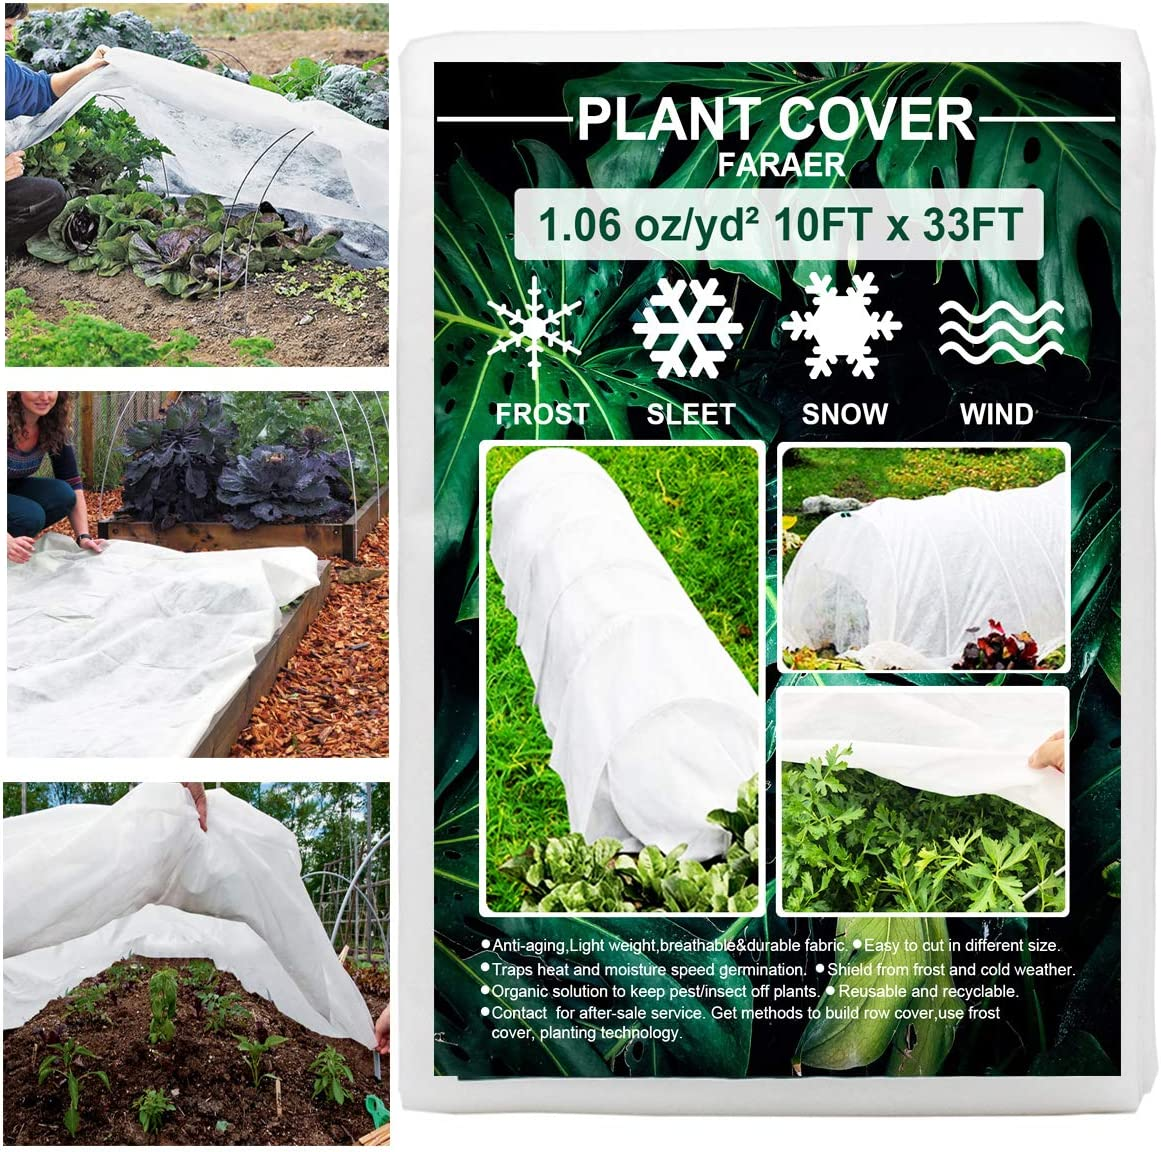 Plant Covers Freeze Protection, 10ft×33ft Reusable Rectangle Frost Protection Floating Row Cover Plant Blanket Garden Winterize Cover for Cold Weather Snow